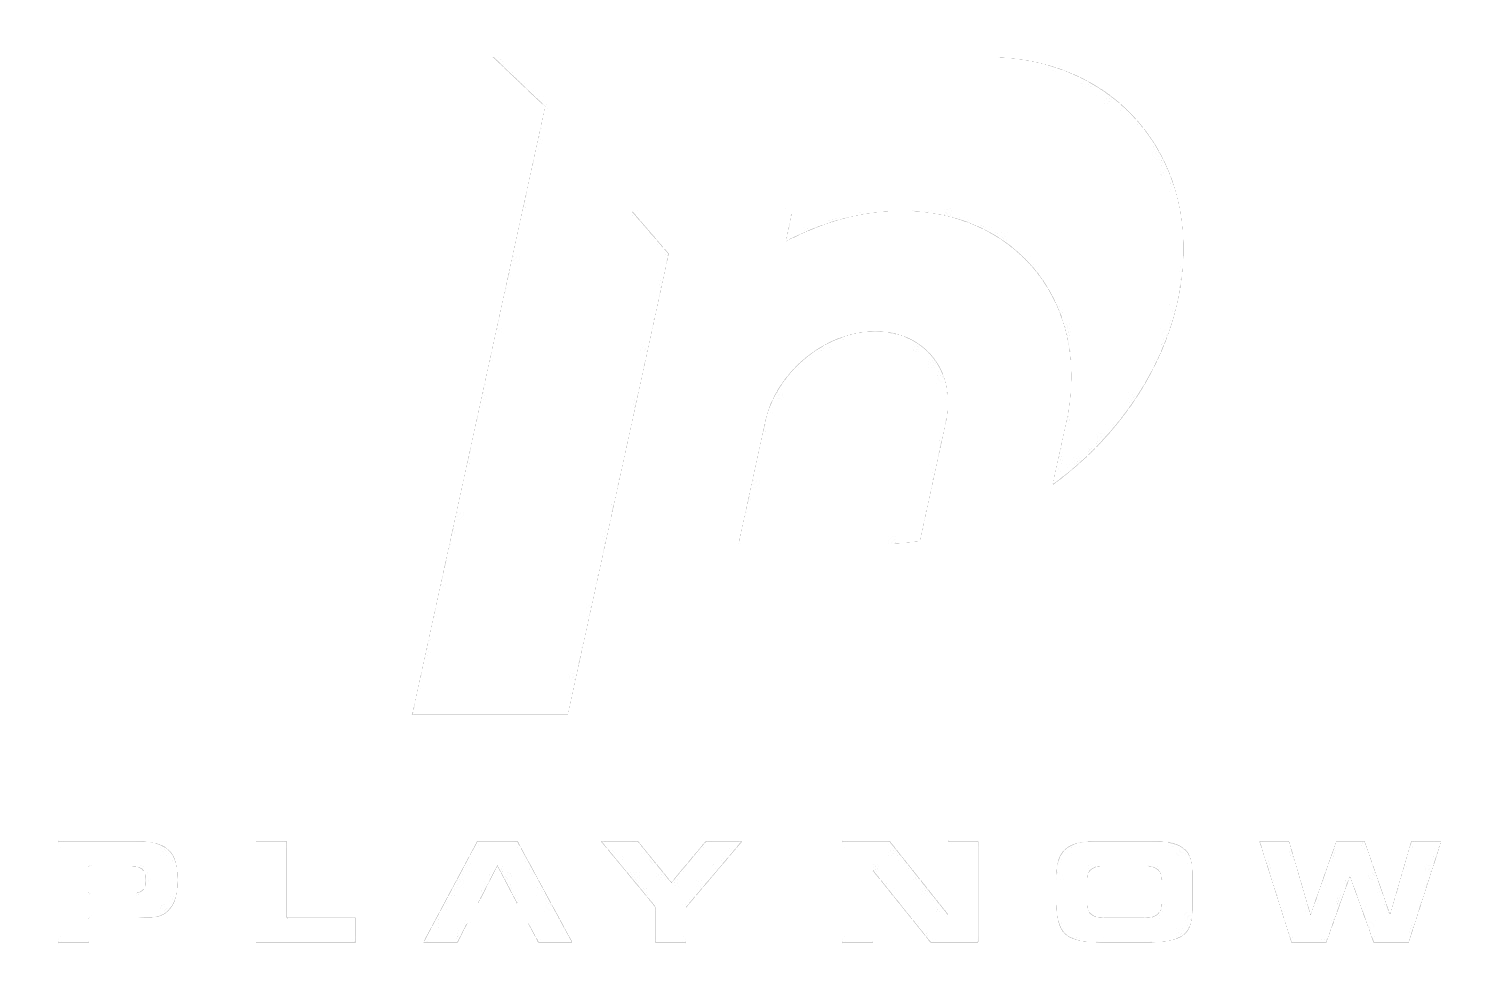 Playnow Management